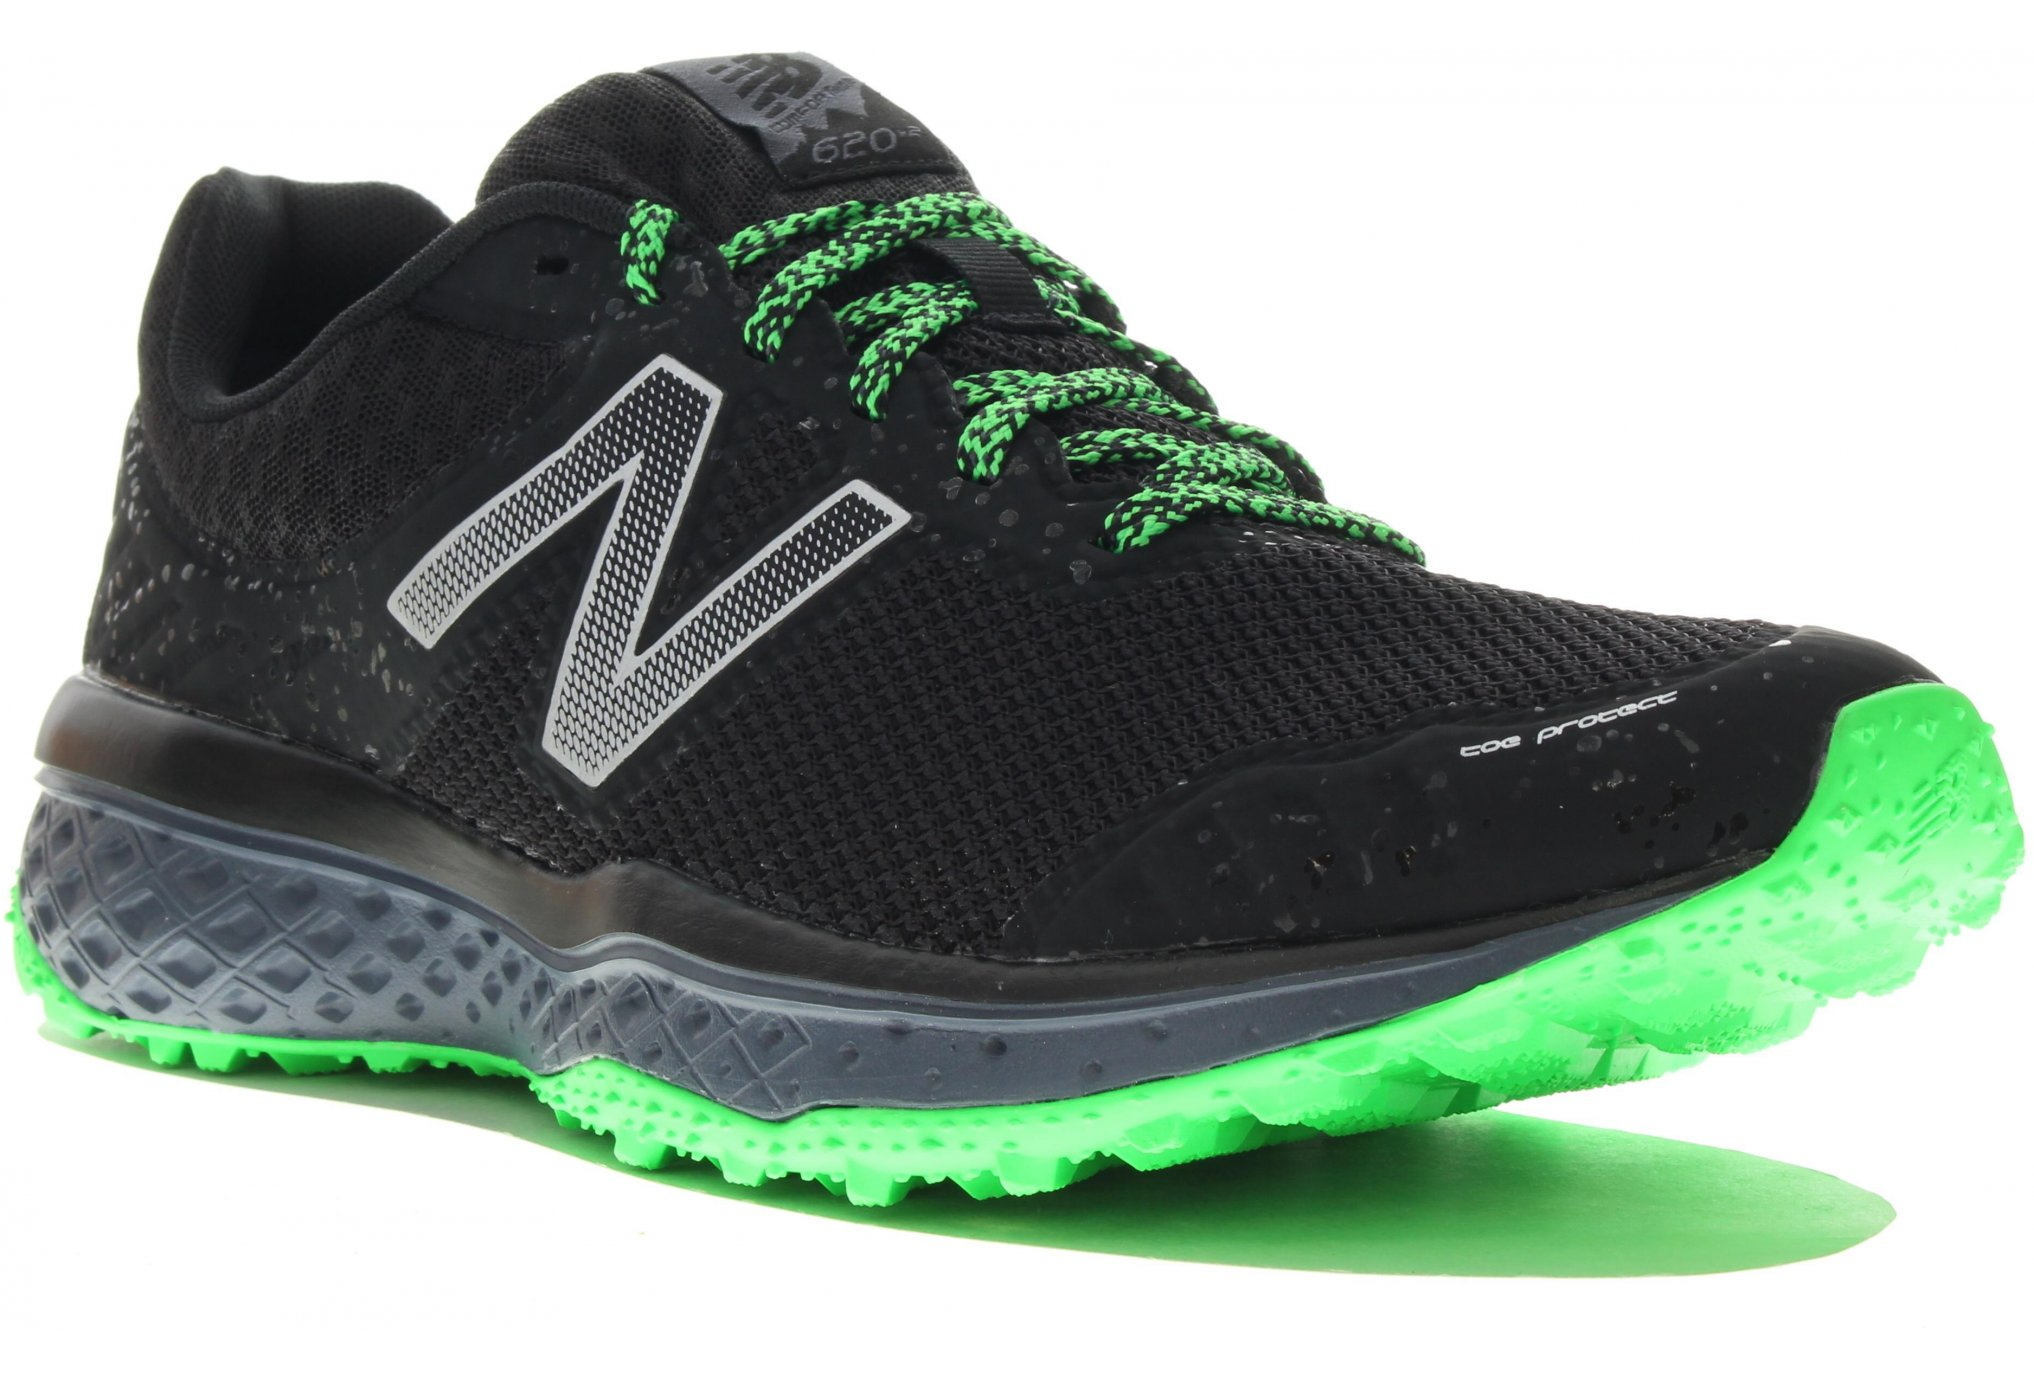 New balance mt620 v2 d chaussures homme